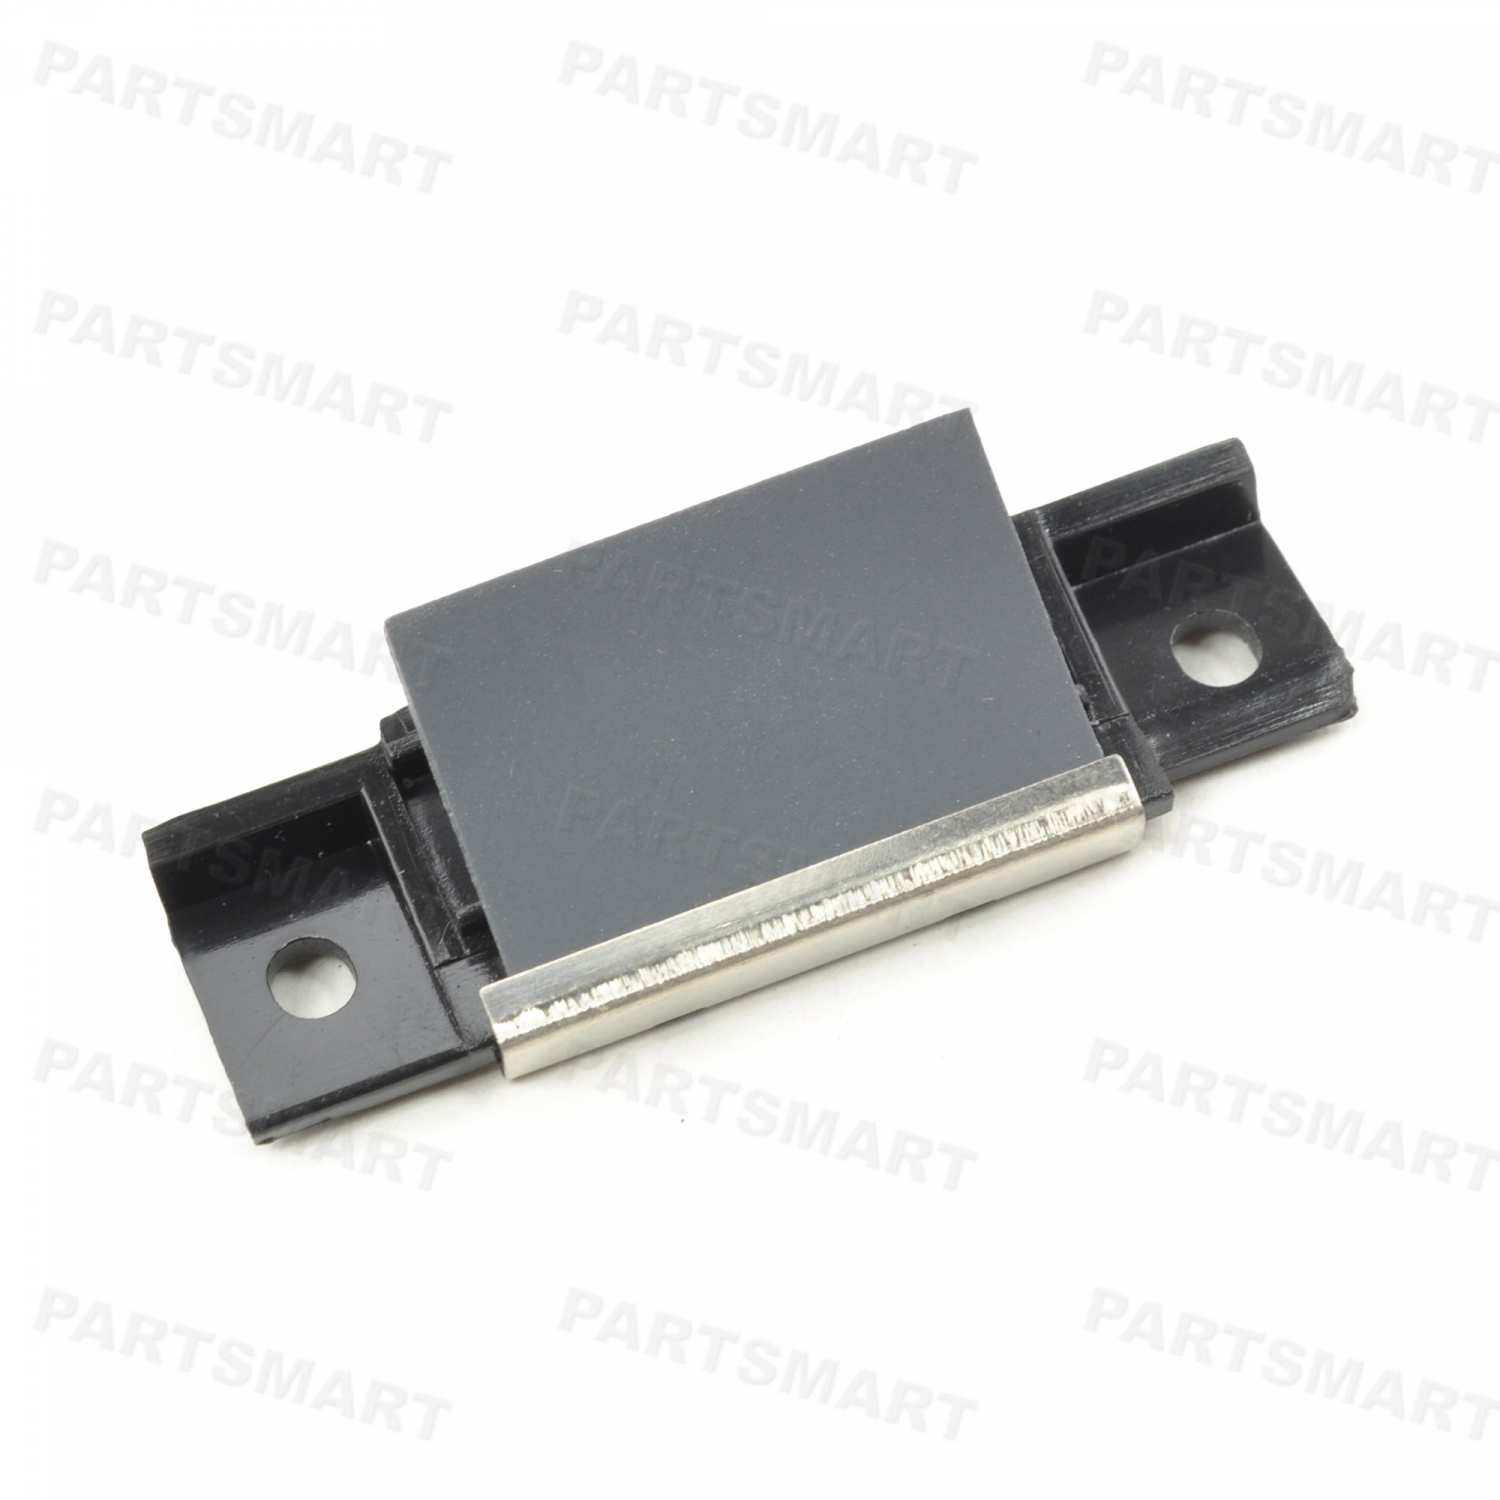 Q2665-60125 ADF Separation Pad for HP Color LaserJet 2820, 2830 and 2840